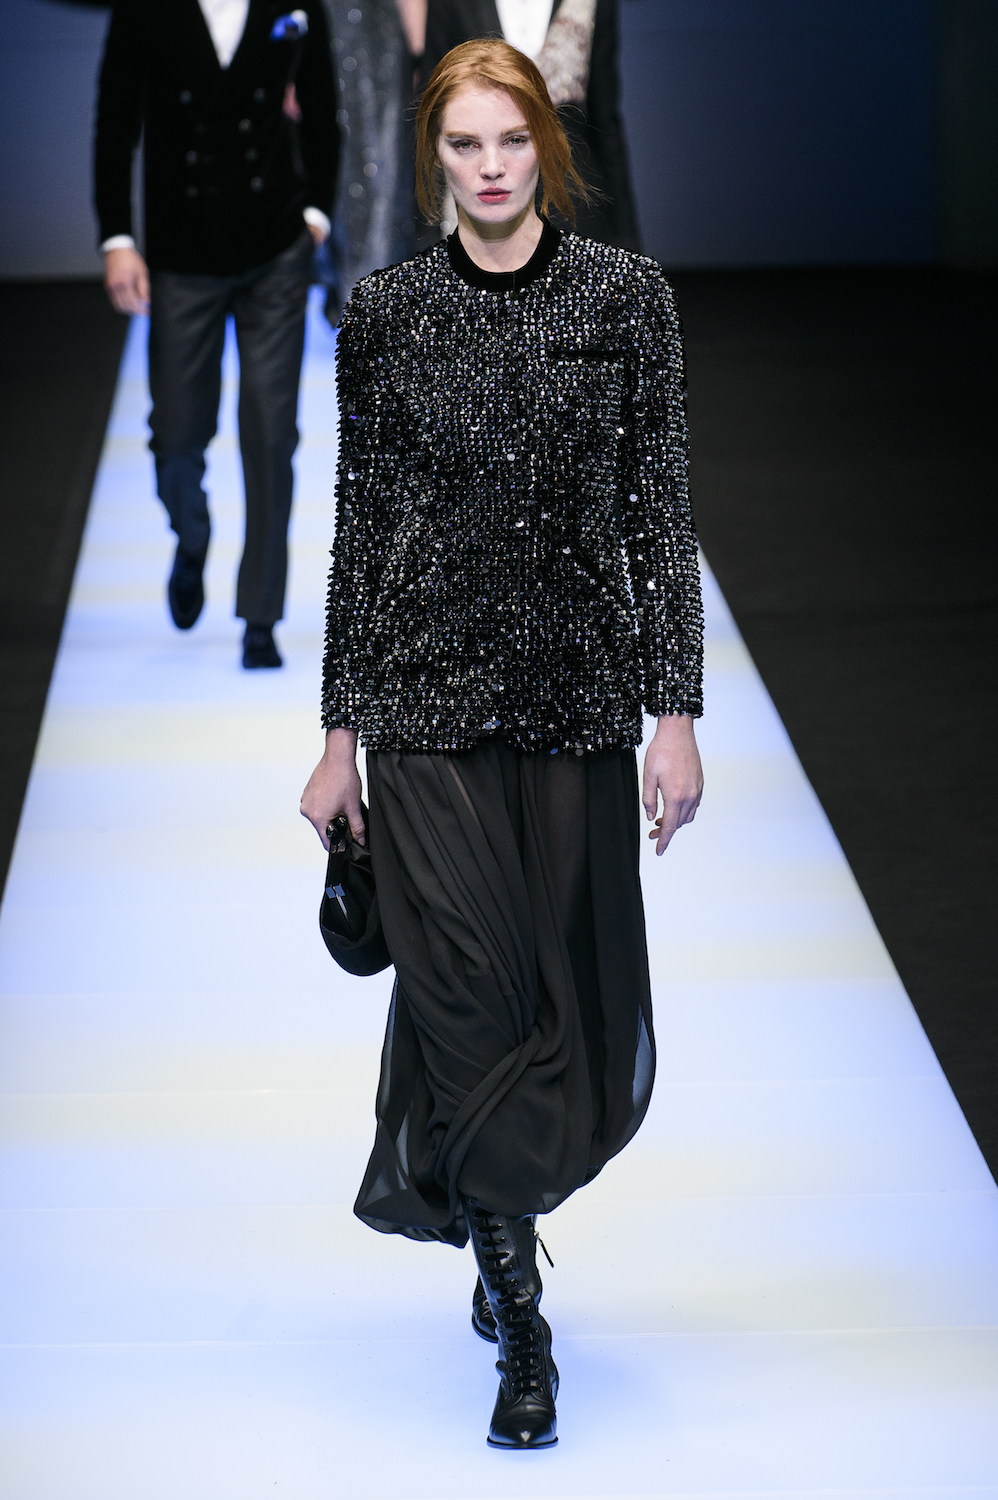 Giorgio Armani Promises No Gimmicks, Only Sophisticated Clothes